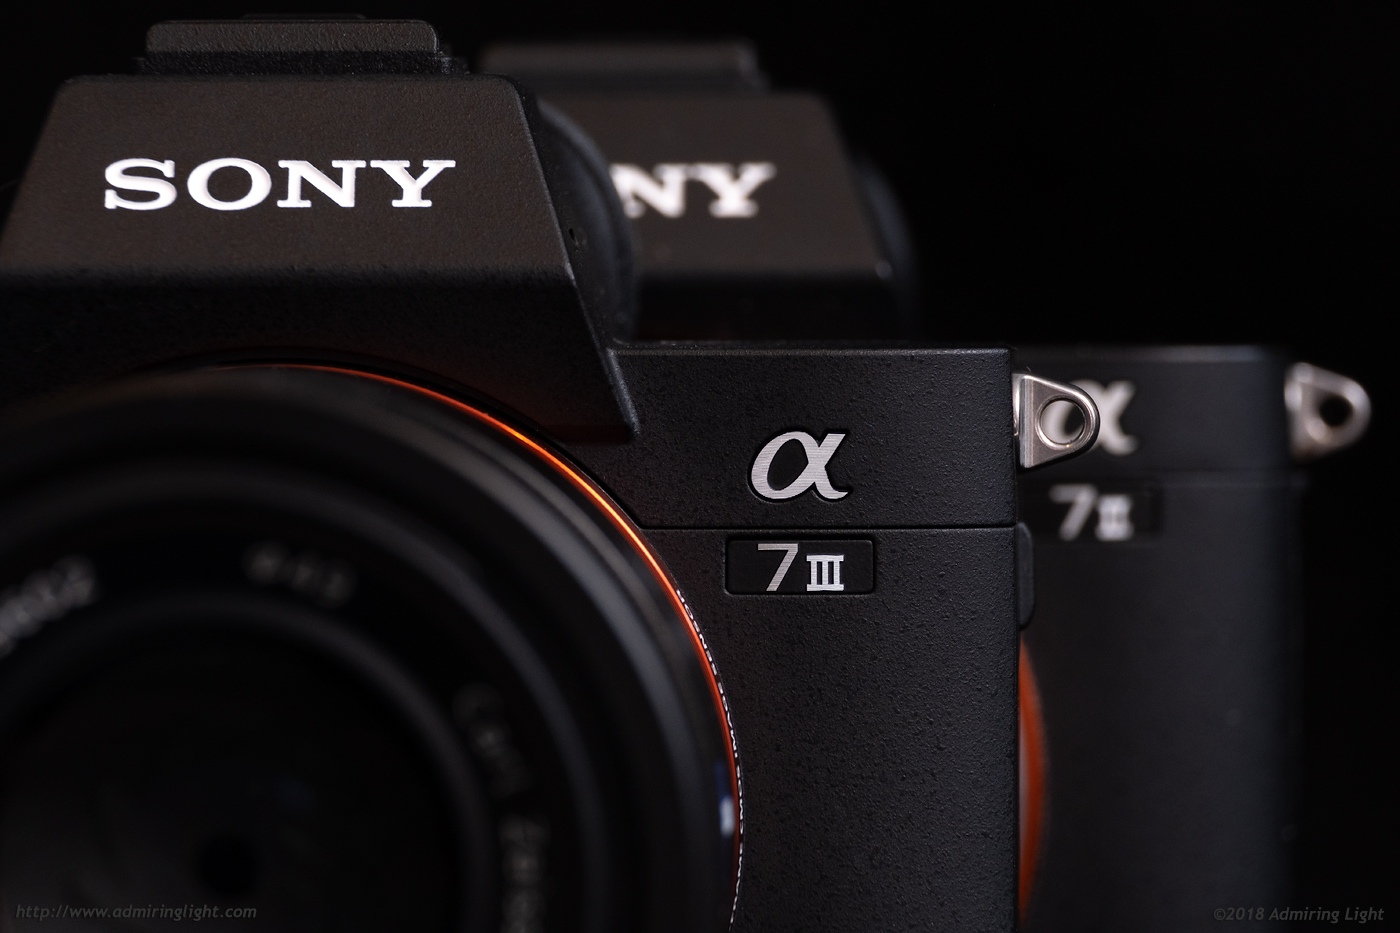 The new Sony A7 III - an upgrade to 2014's A7 II